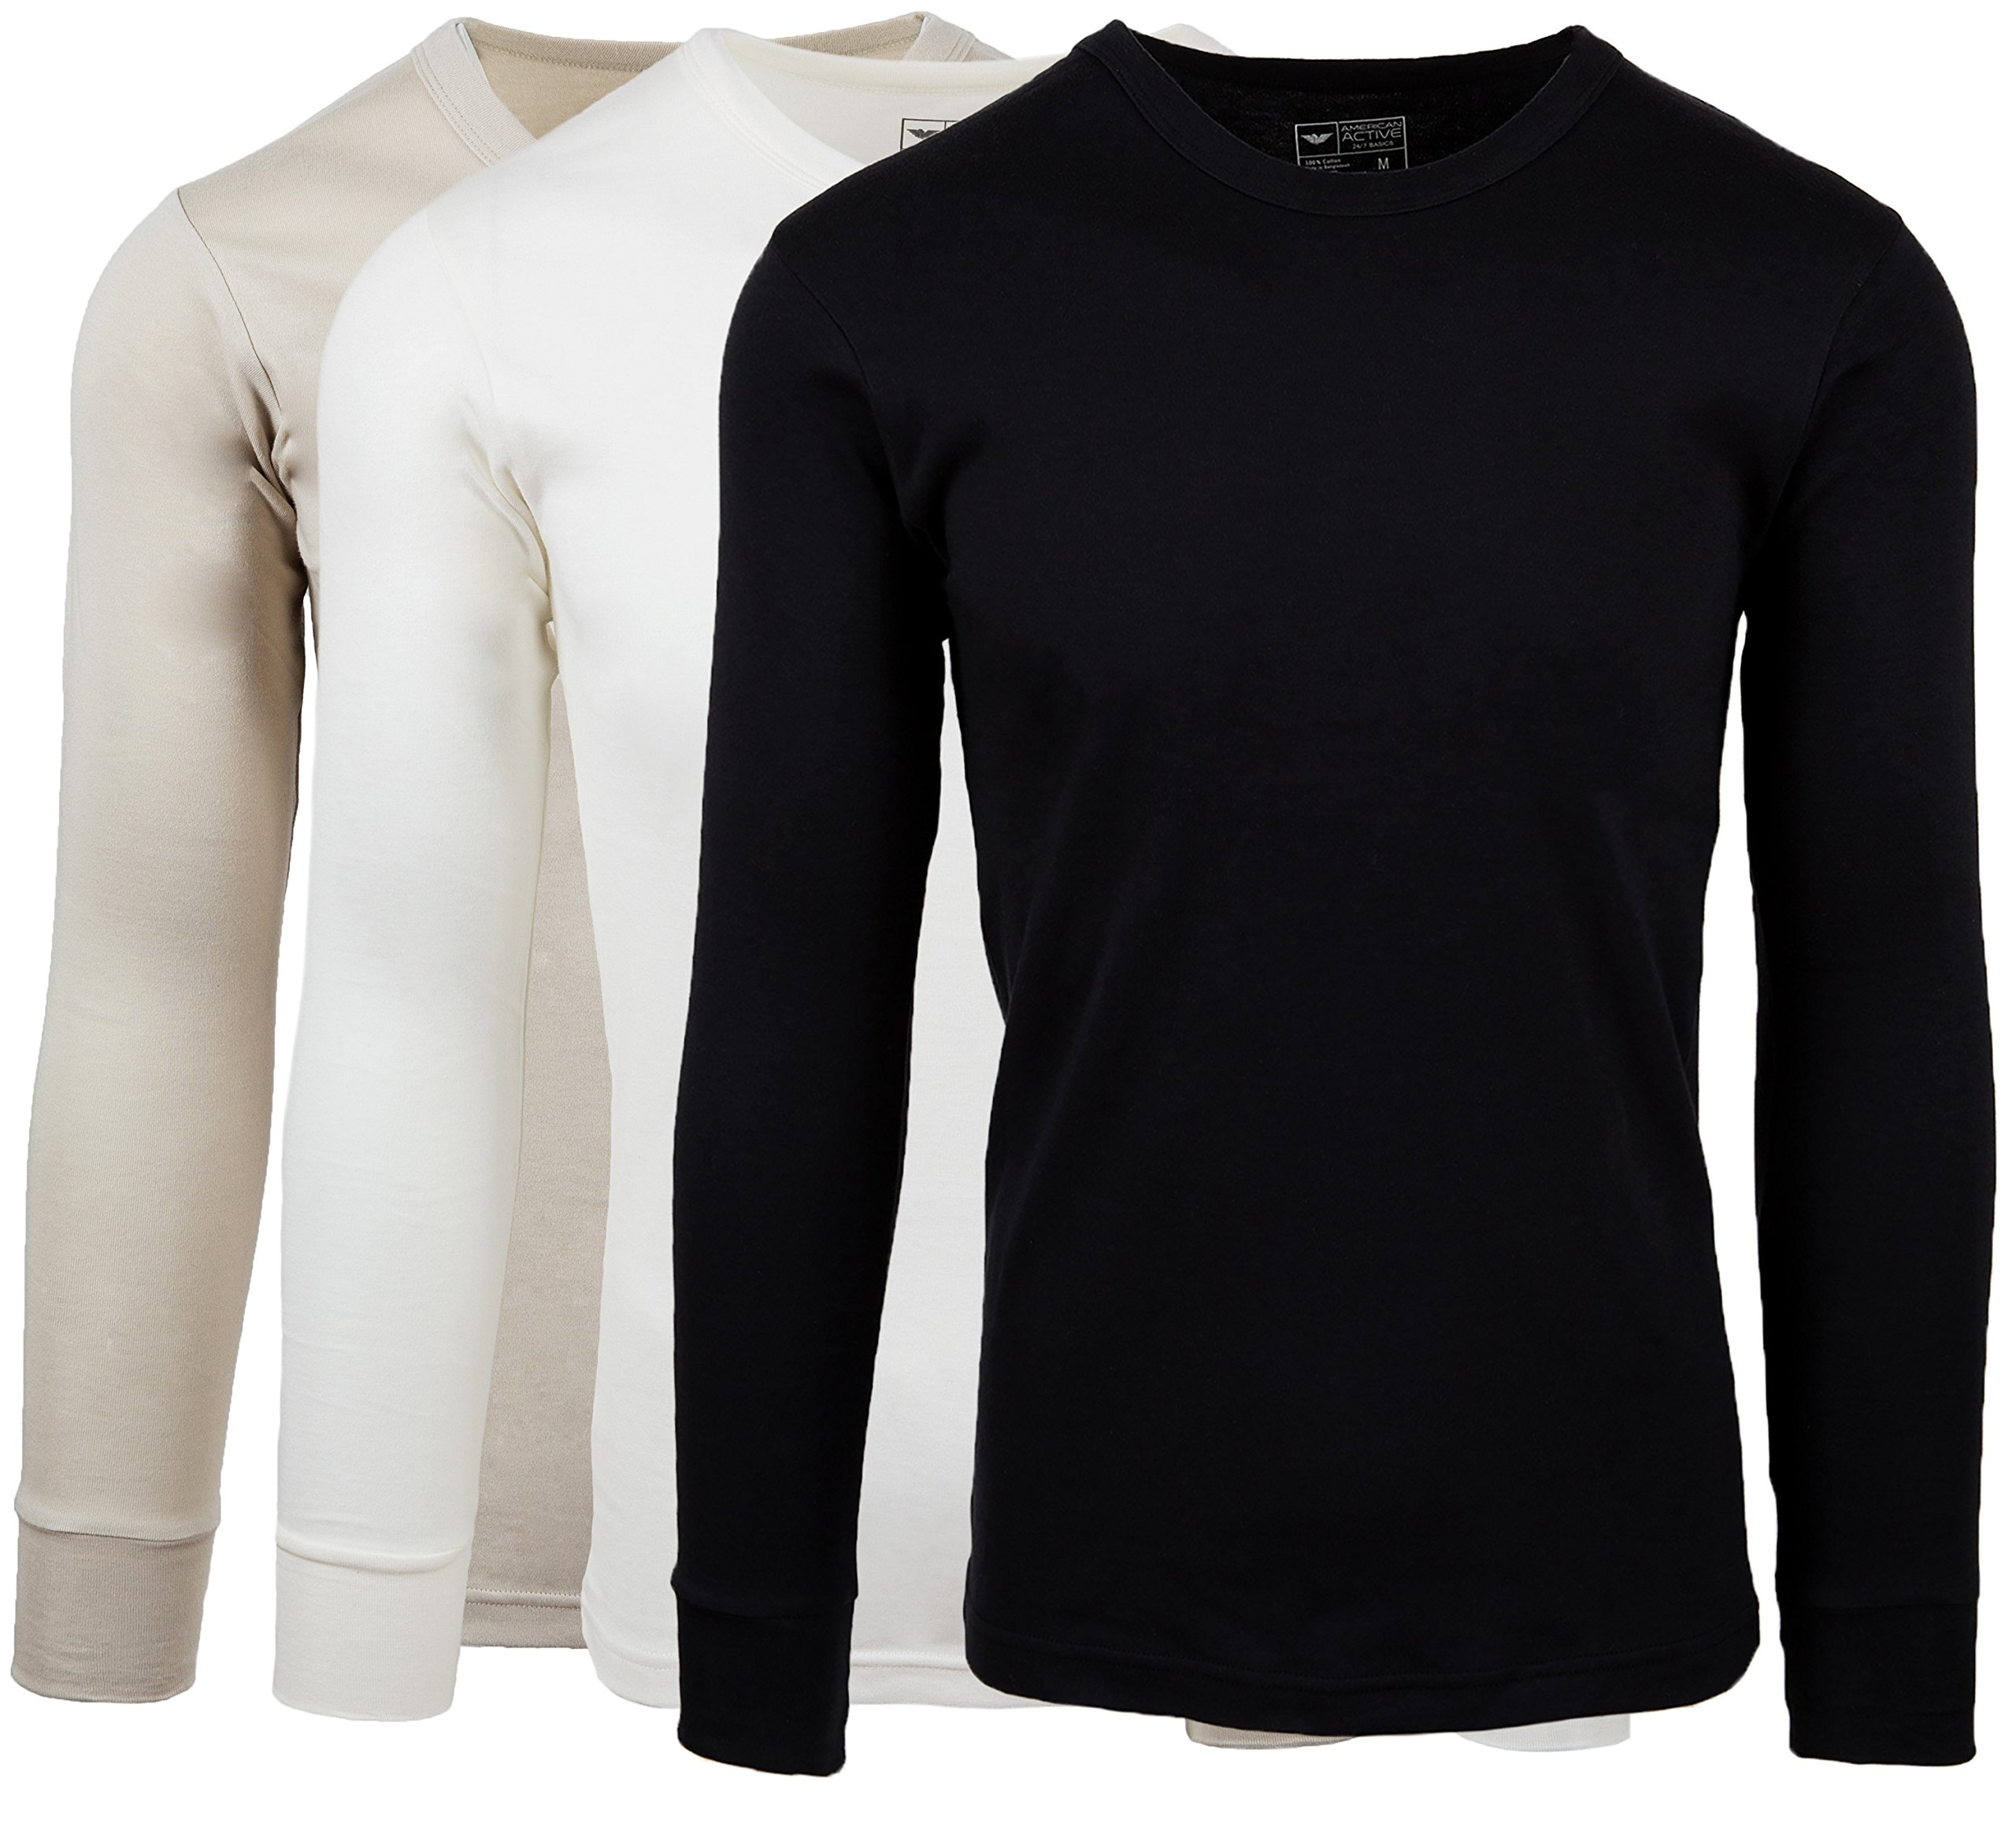 AMERICAN ACTIVE Men's 3 Pack 100% Cotton Fleece Lined Base Layer Long Sleeve Thermal Crew Neck Shirt (3 Pack-Black/Cream/Stone, Small) by AMERICAN ACTIVE